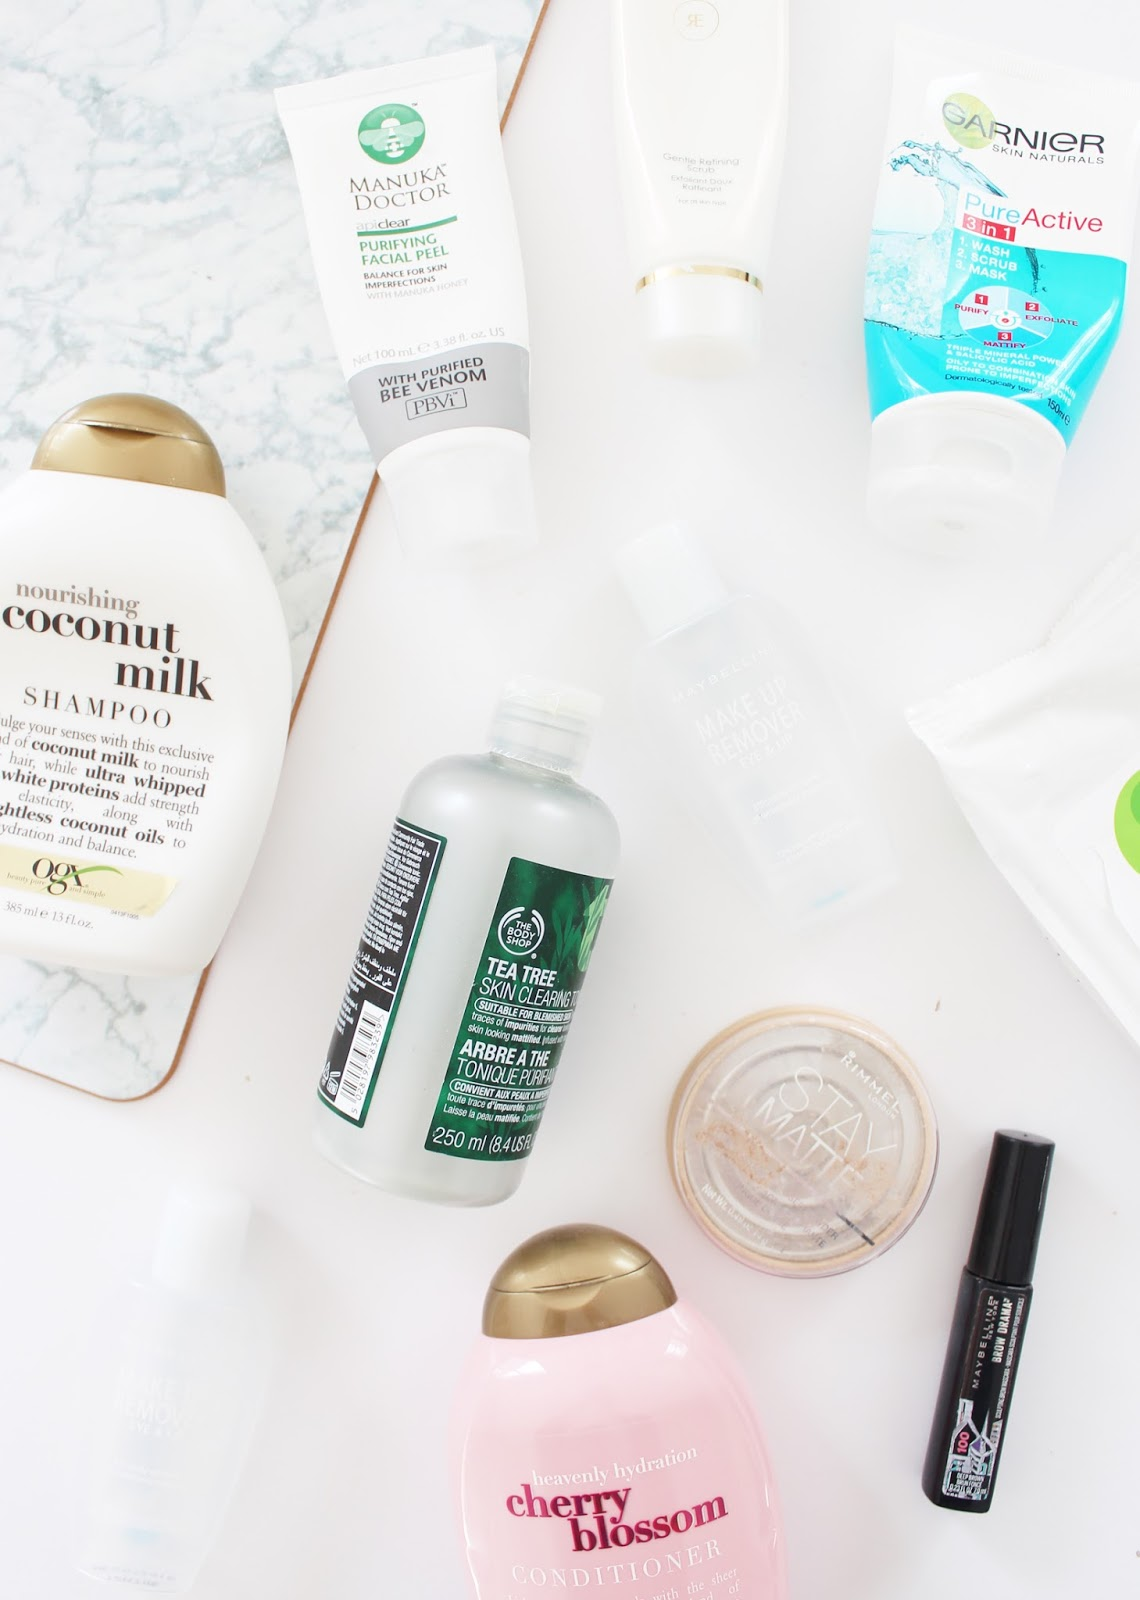 EMPTIES | May '16 - OGX, The Body Shop, Rimmel, Maybelline, Garnier + More